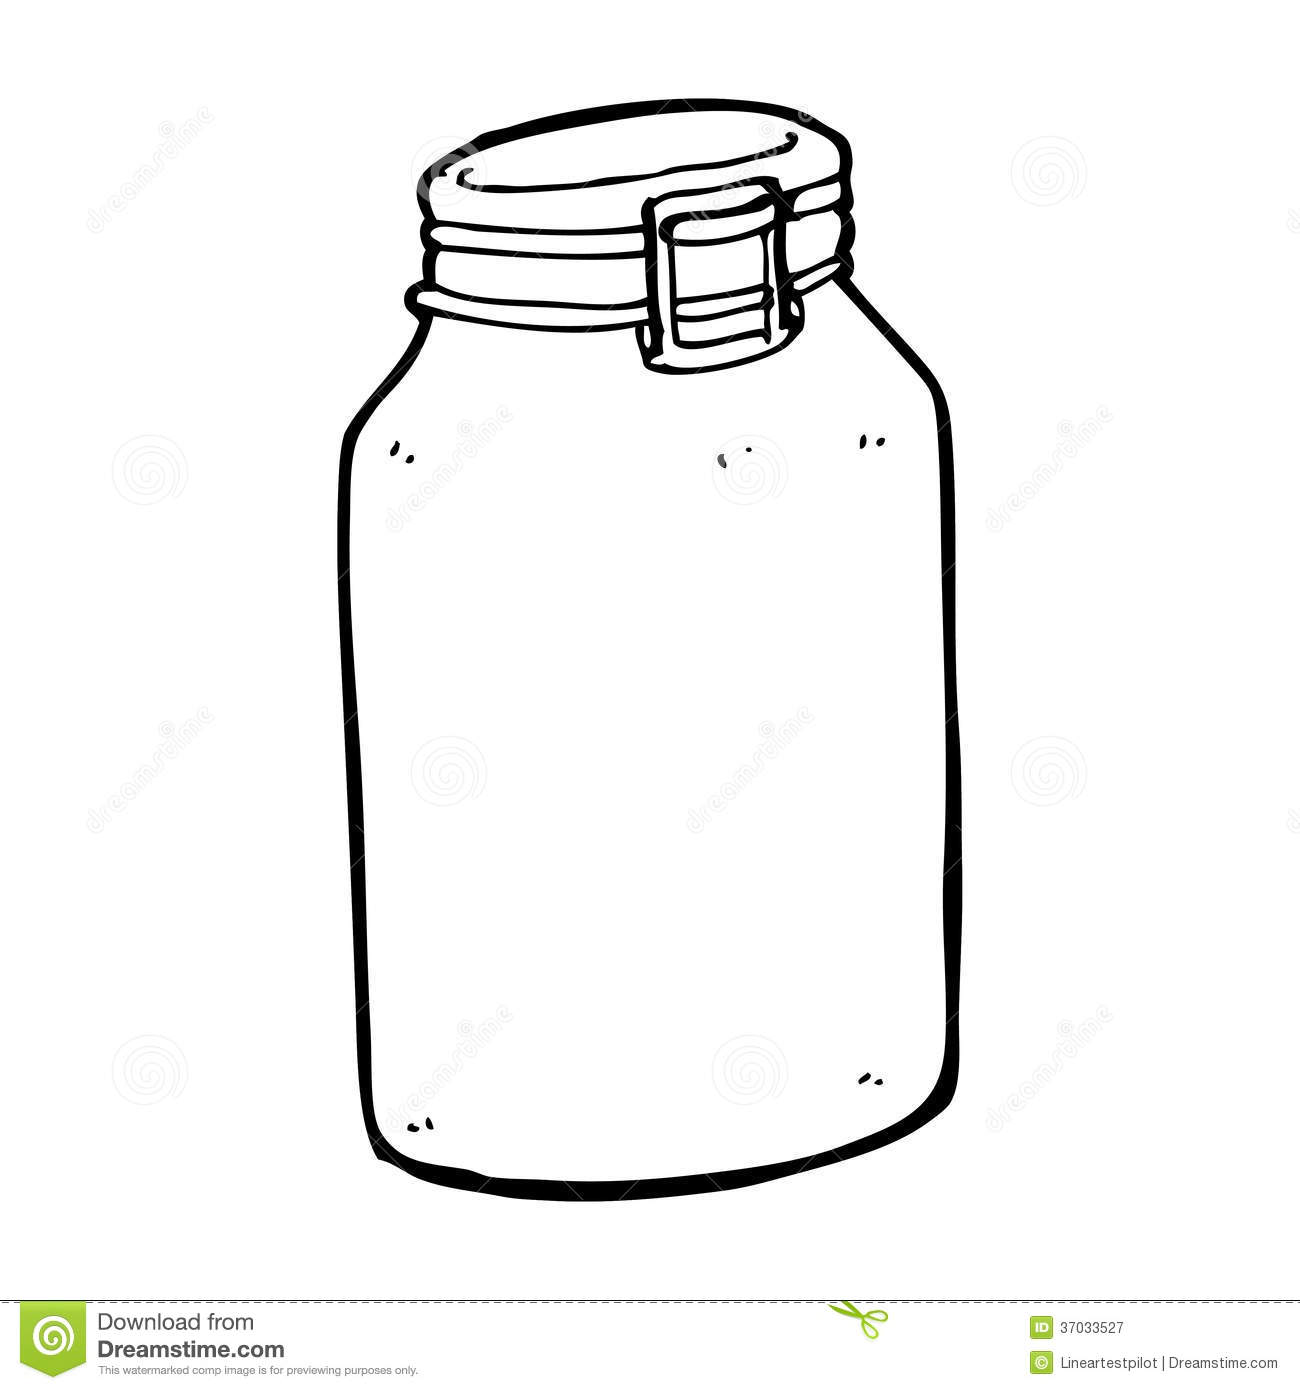 Line Drawing Jar : Cartoon glass jar stock illustration of